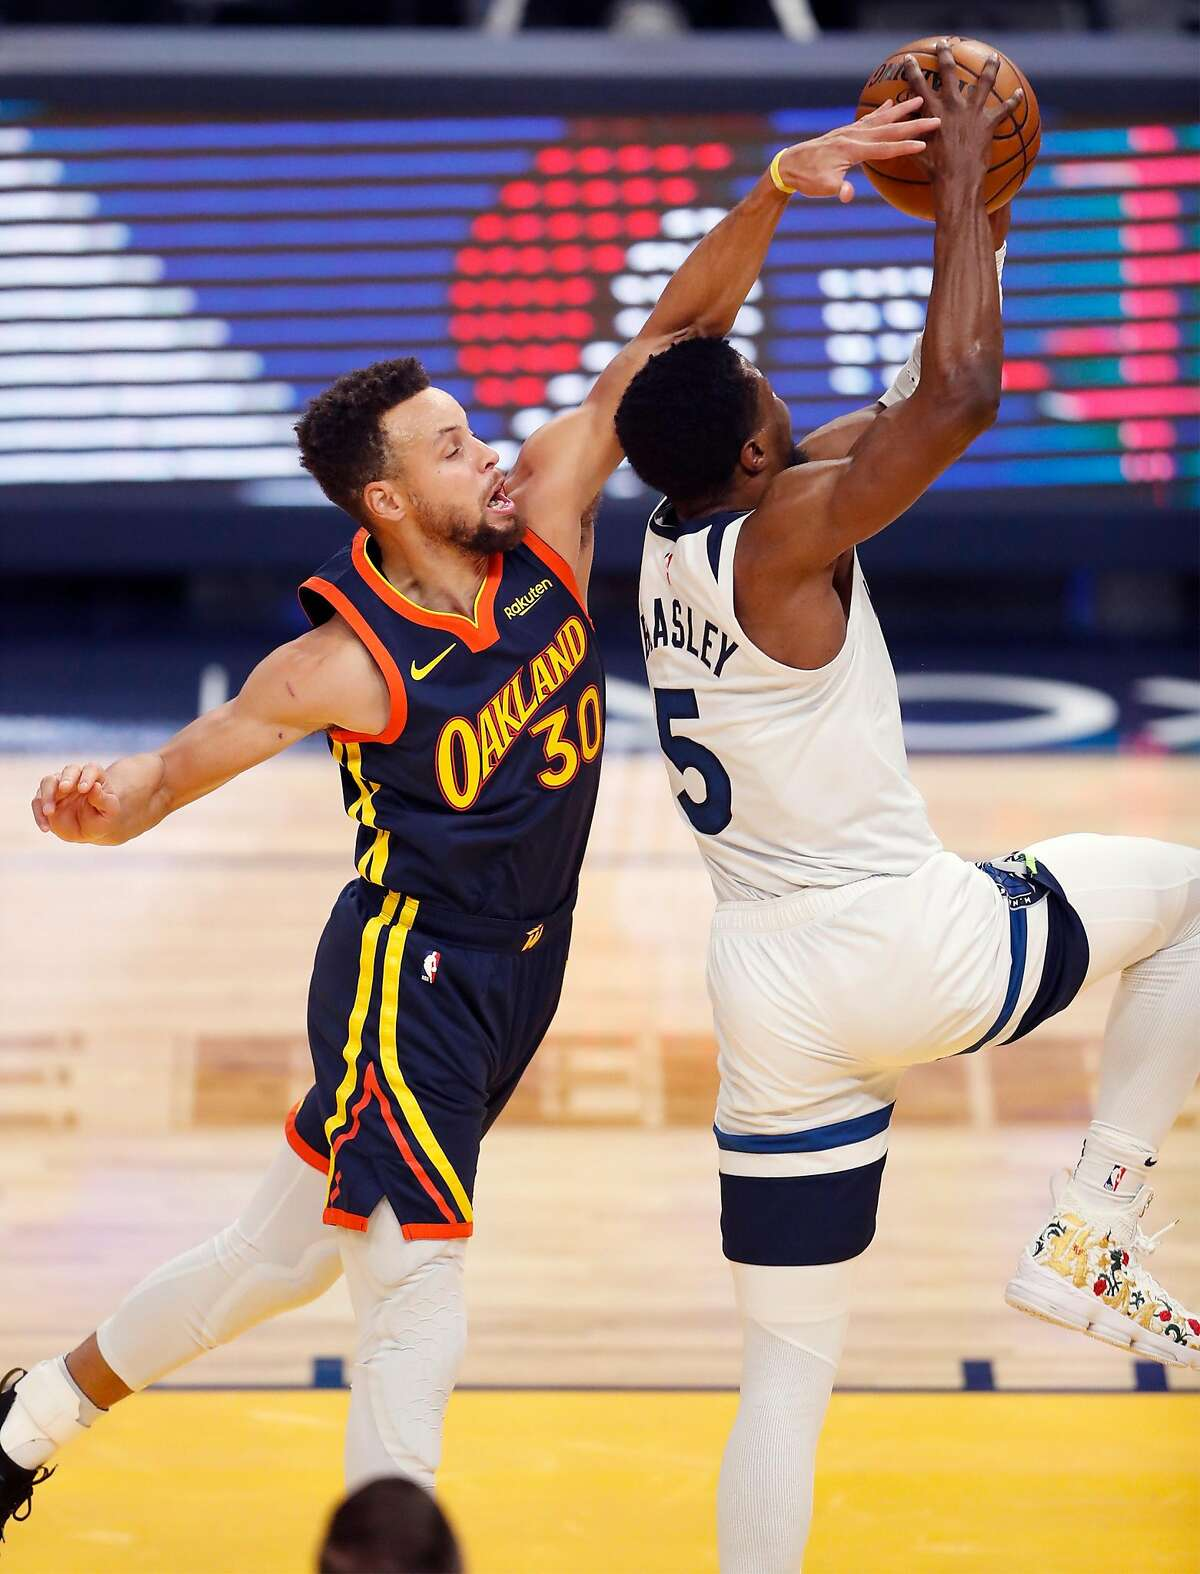 Golden State Warriors' Stephen Curry defends against Minnesota Timberwolves' Malik Beasley in 1st quarter during NBA game at Chase Center in San Francisco, Calif., on Wednesday, January 27, 2021.